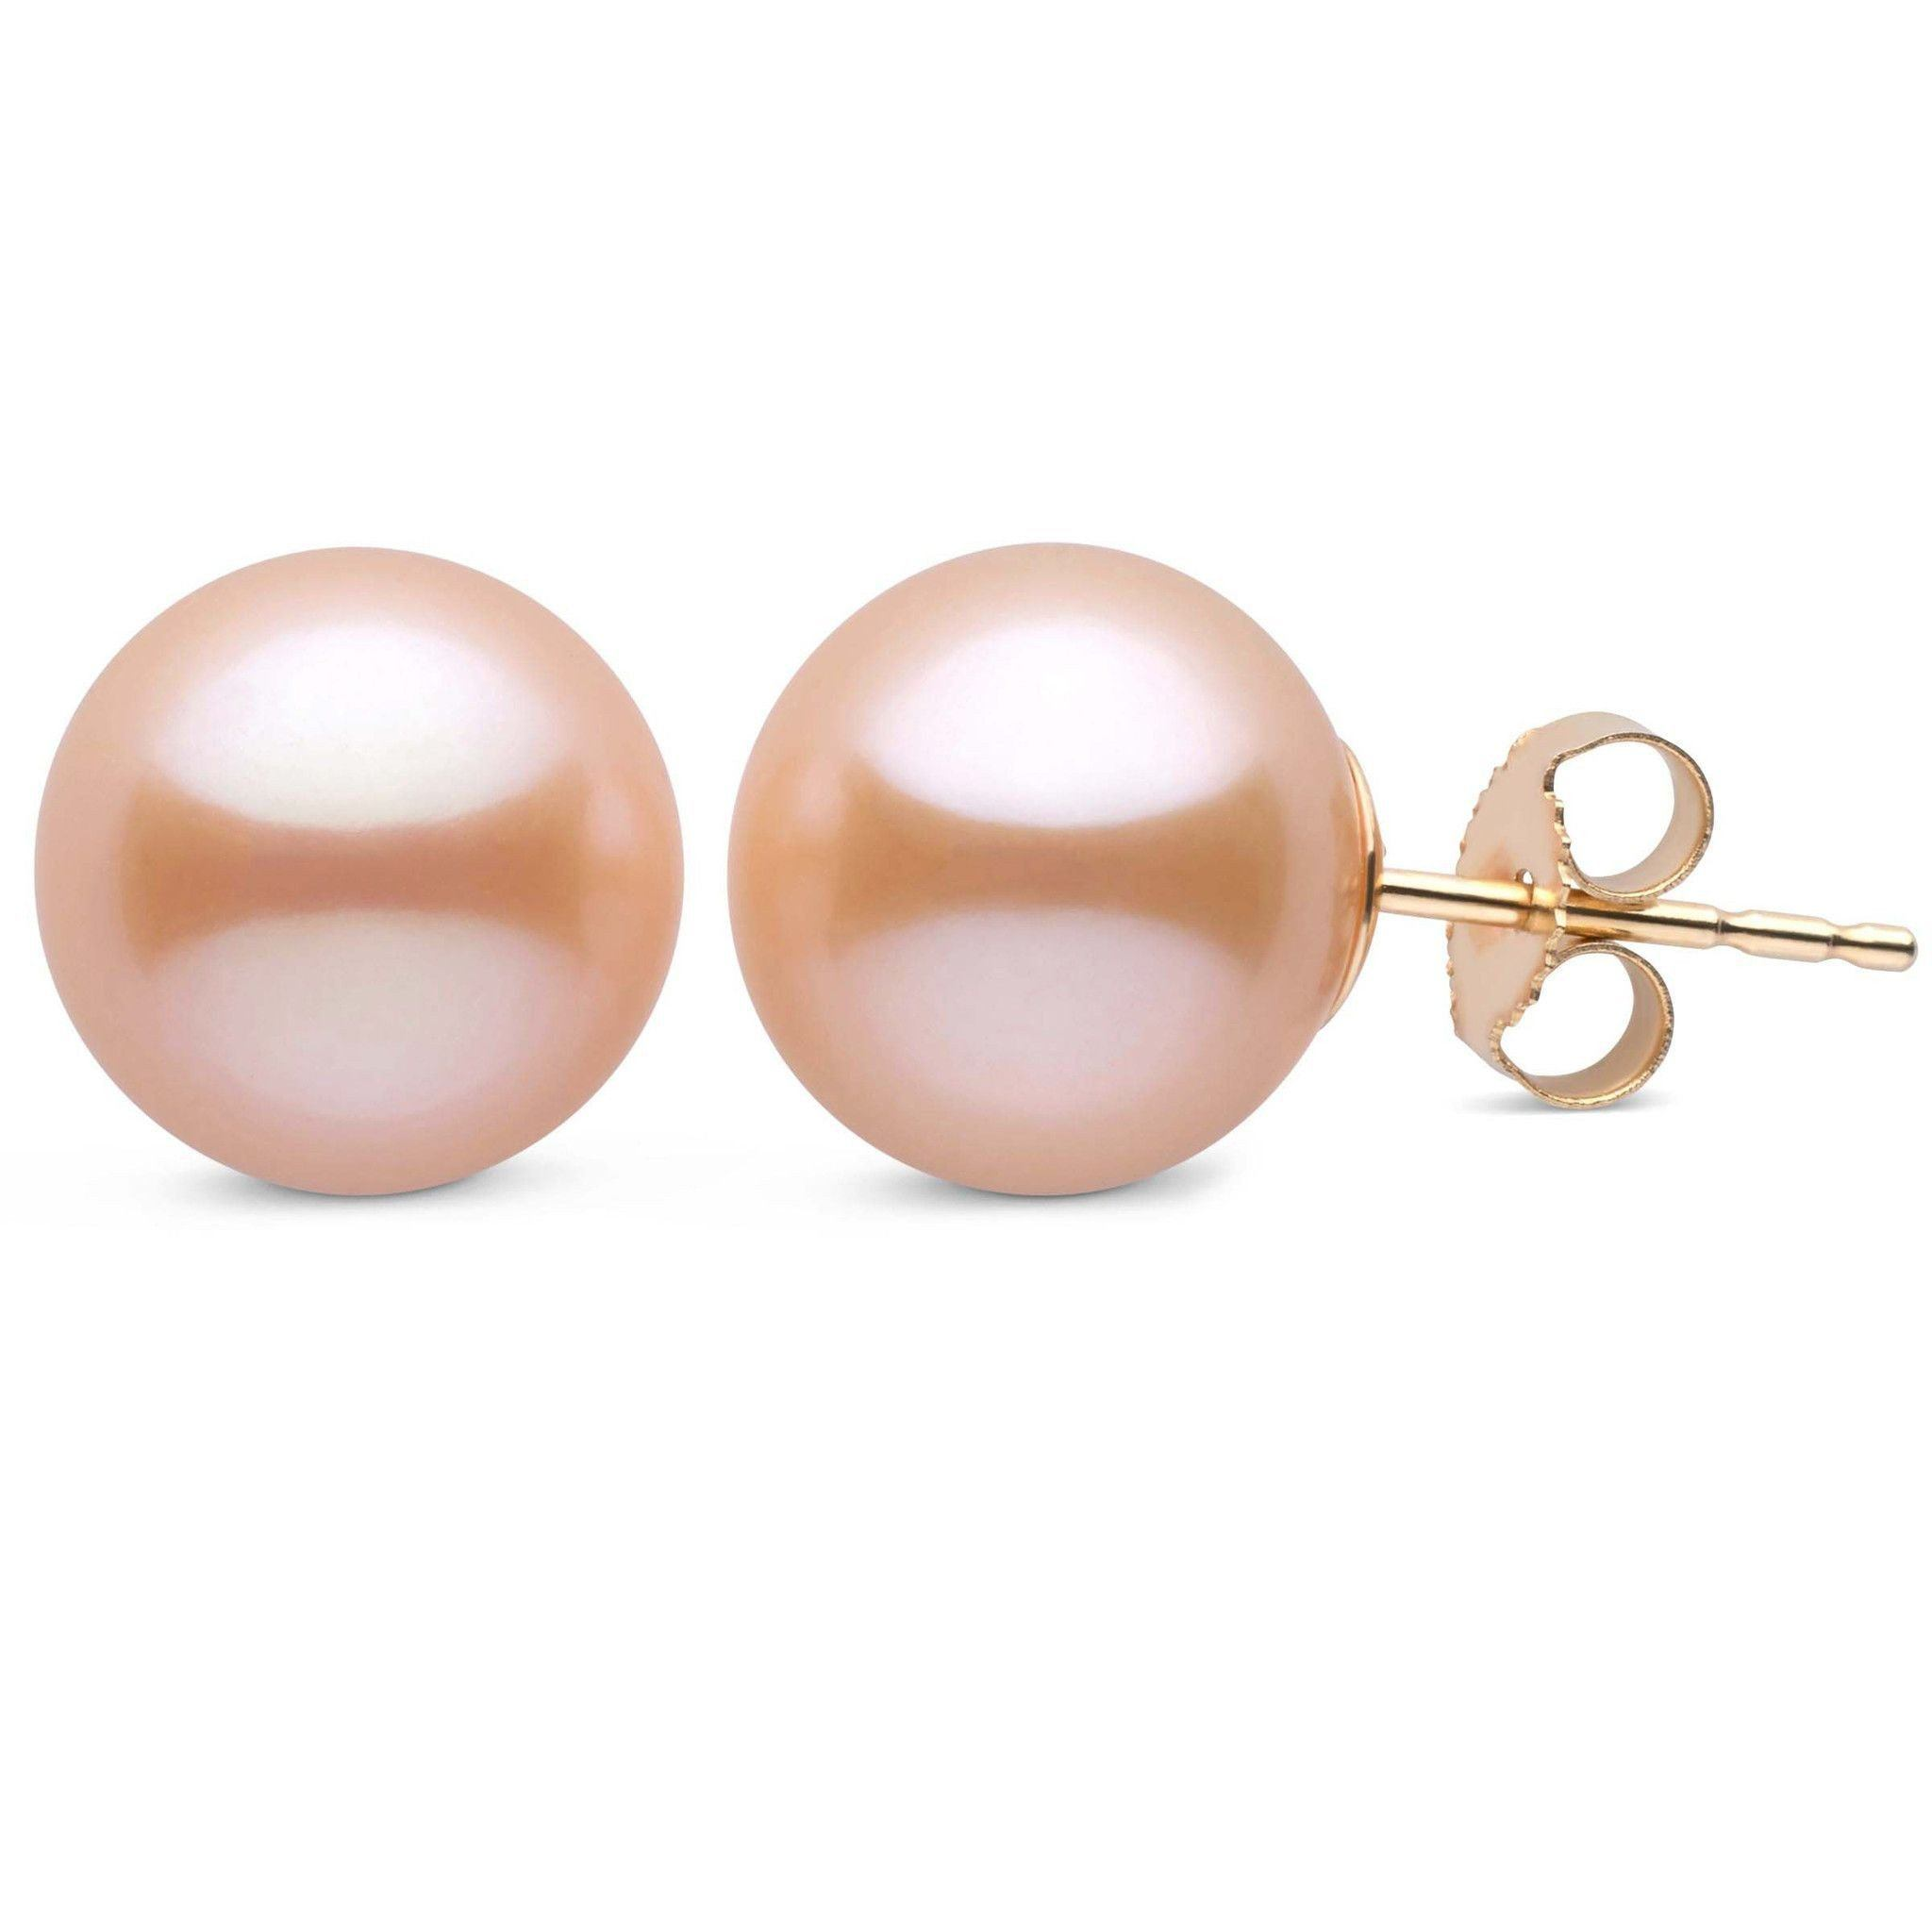 10.0-11.0 mm AAA Pink to Peach Freshwater Pearl Stud Earrings